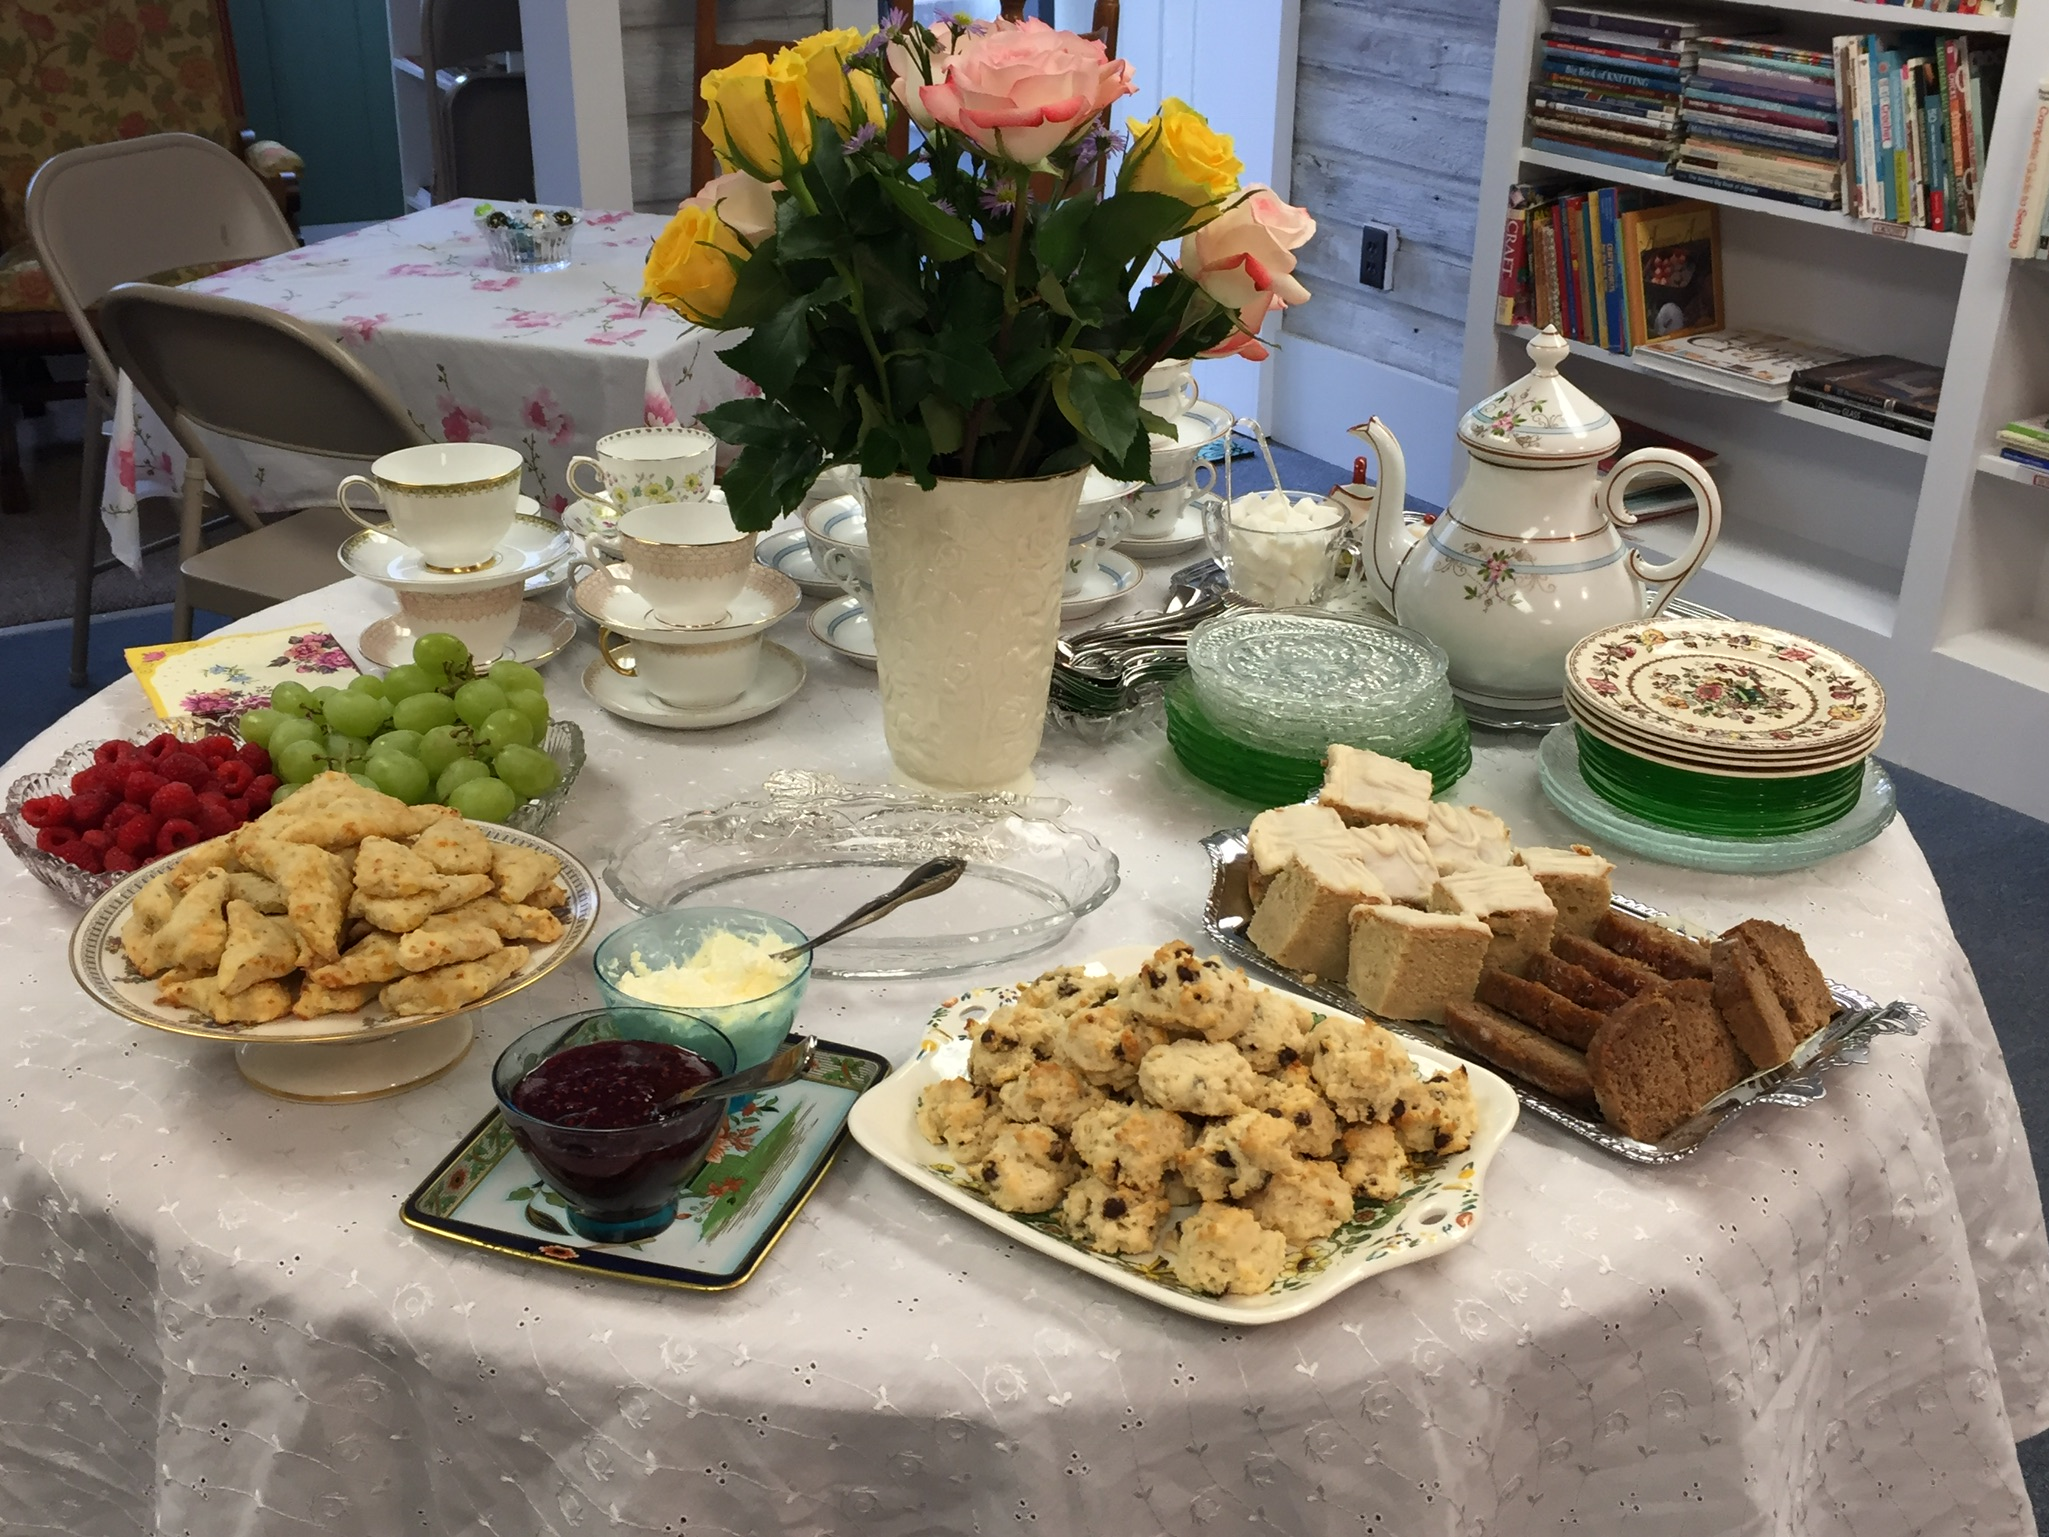 Tea and scones at our Victorian Tea Party.